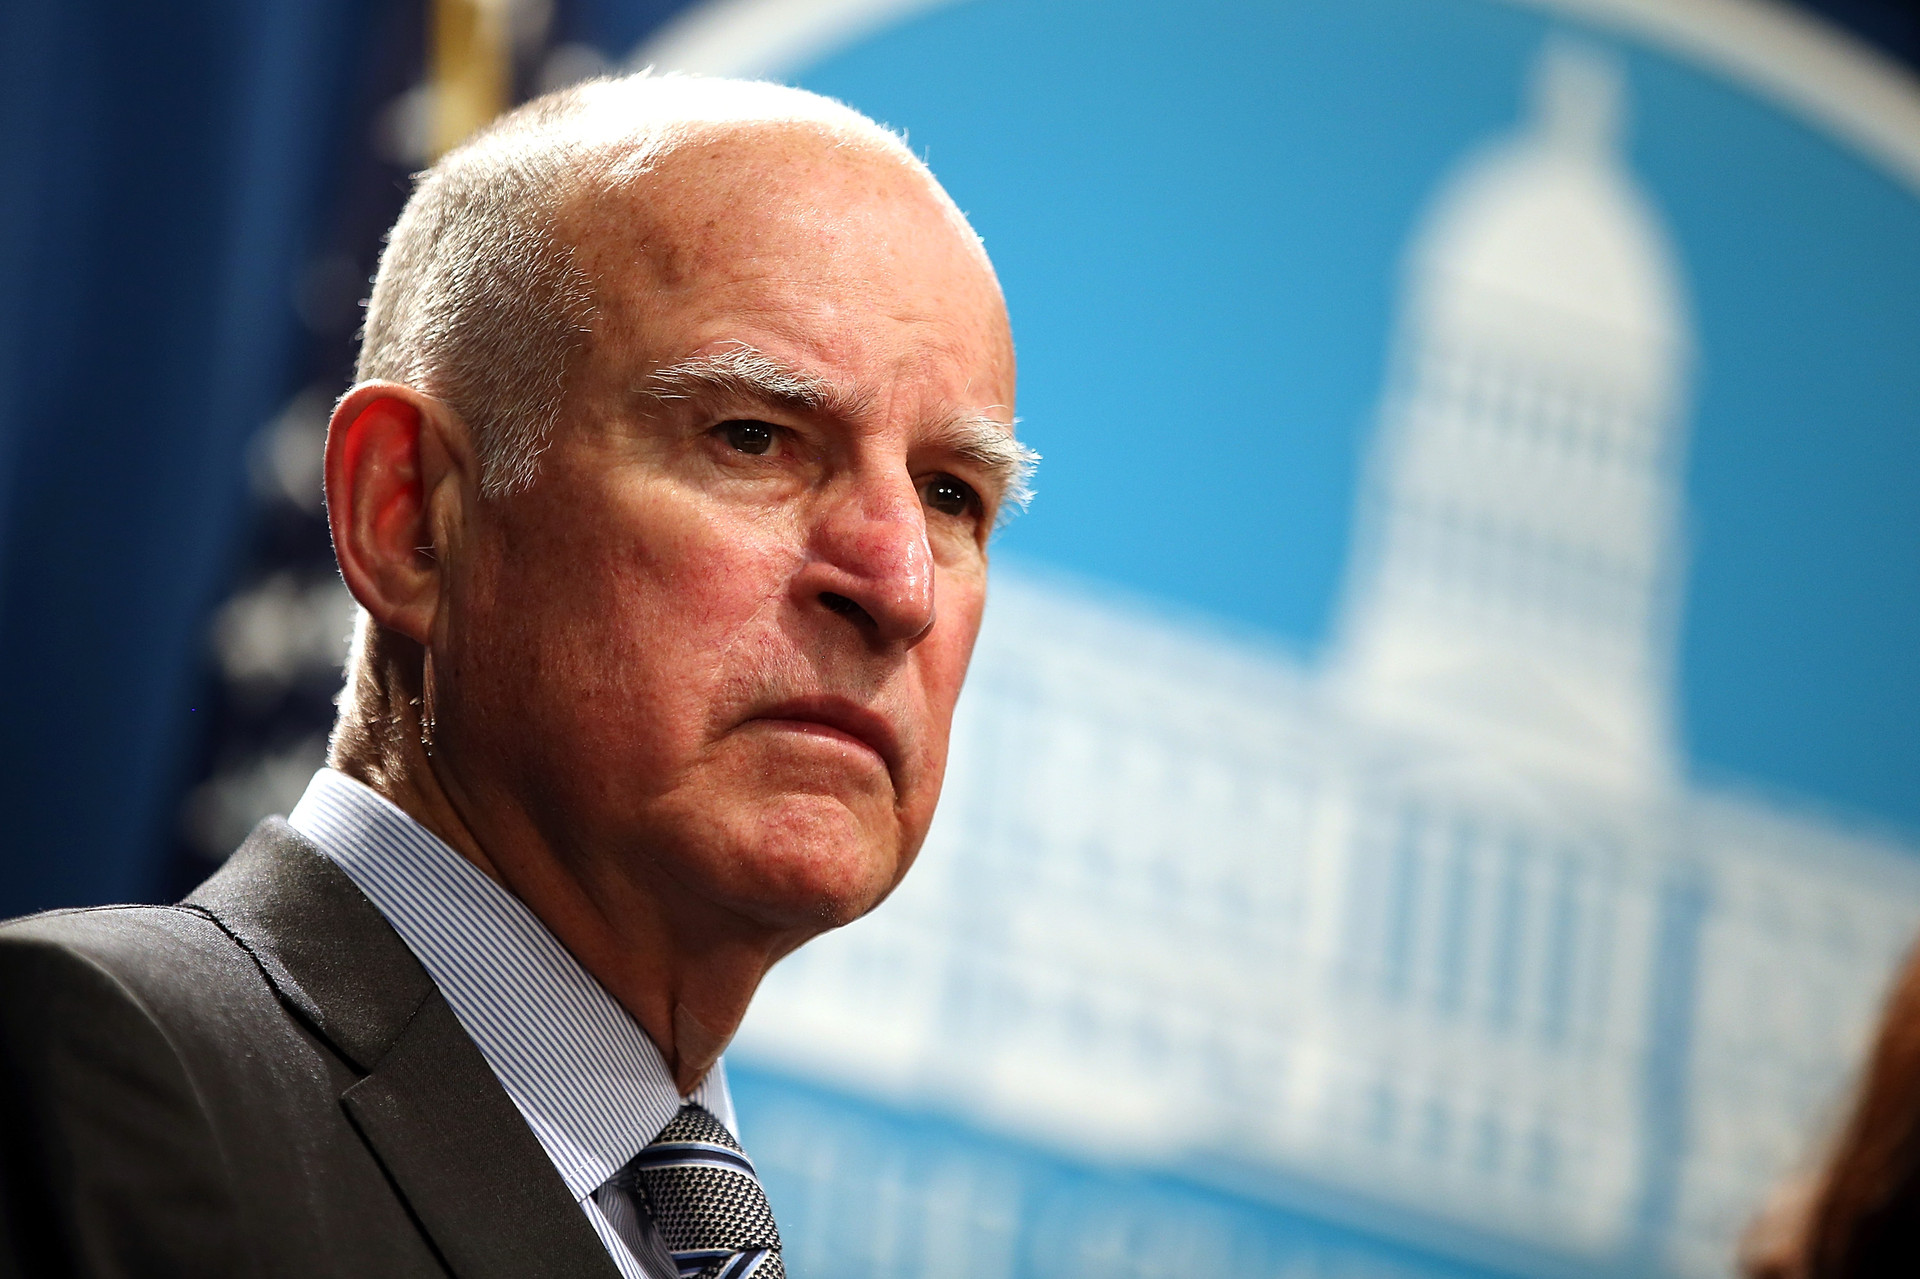 California Gov. Jerry Brown speaks during a news conference.